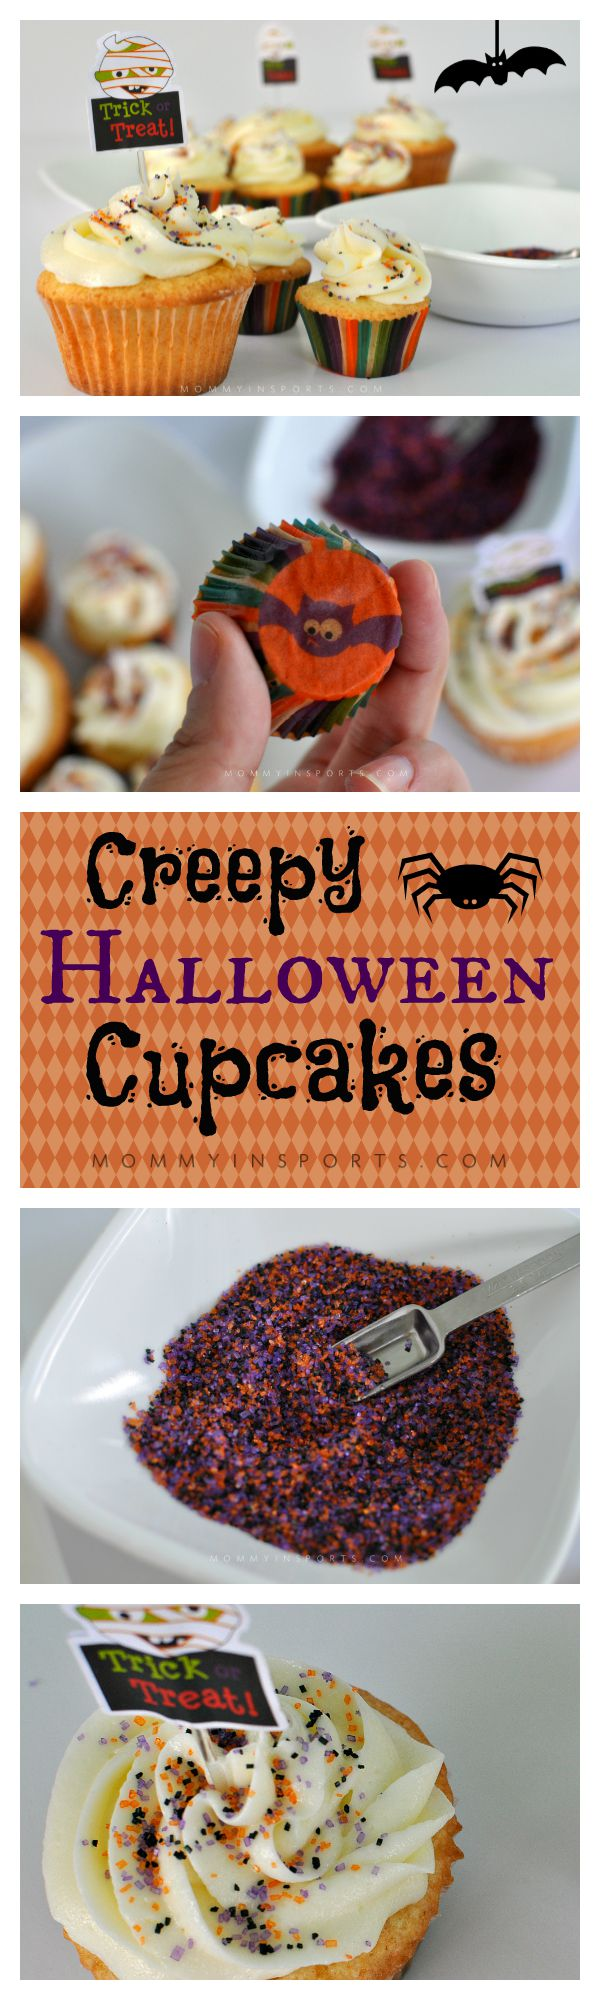 Looking for an easy way to celebrate Halloween with the kids?! Get creative in the kitchen with these delicious Halloween cupcakes! Simple is best don't you think?!